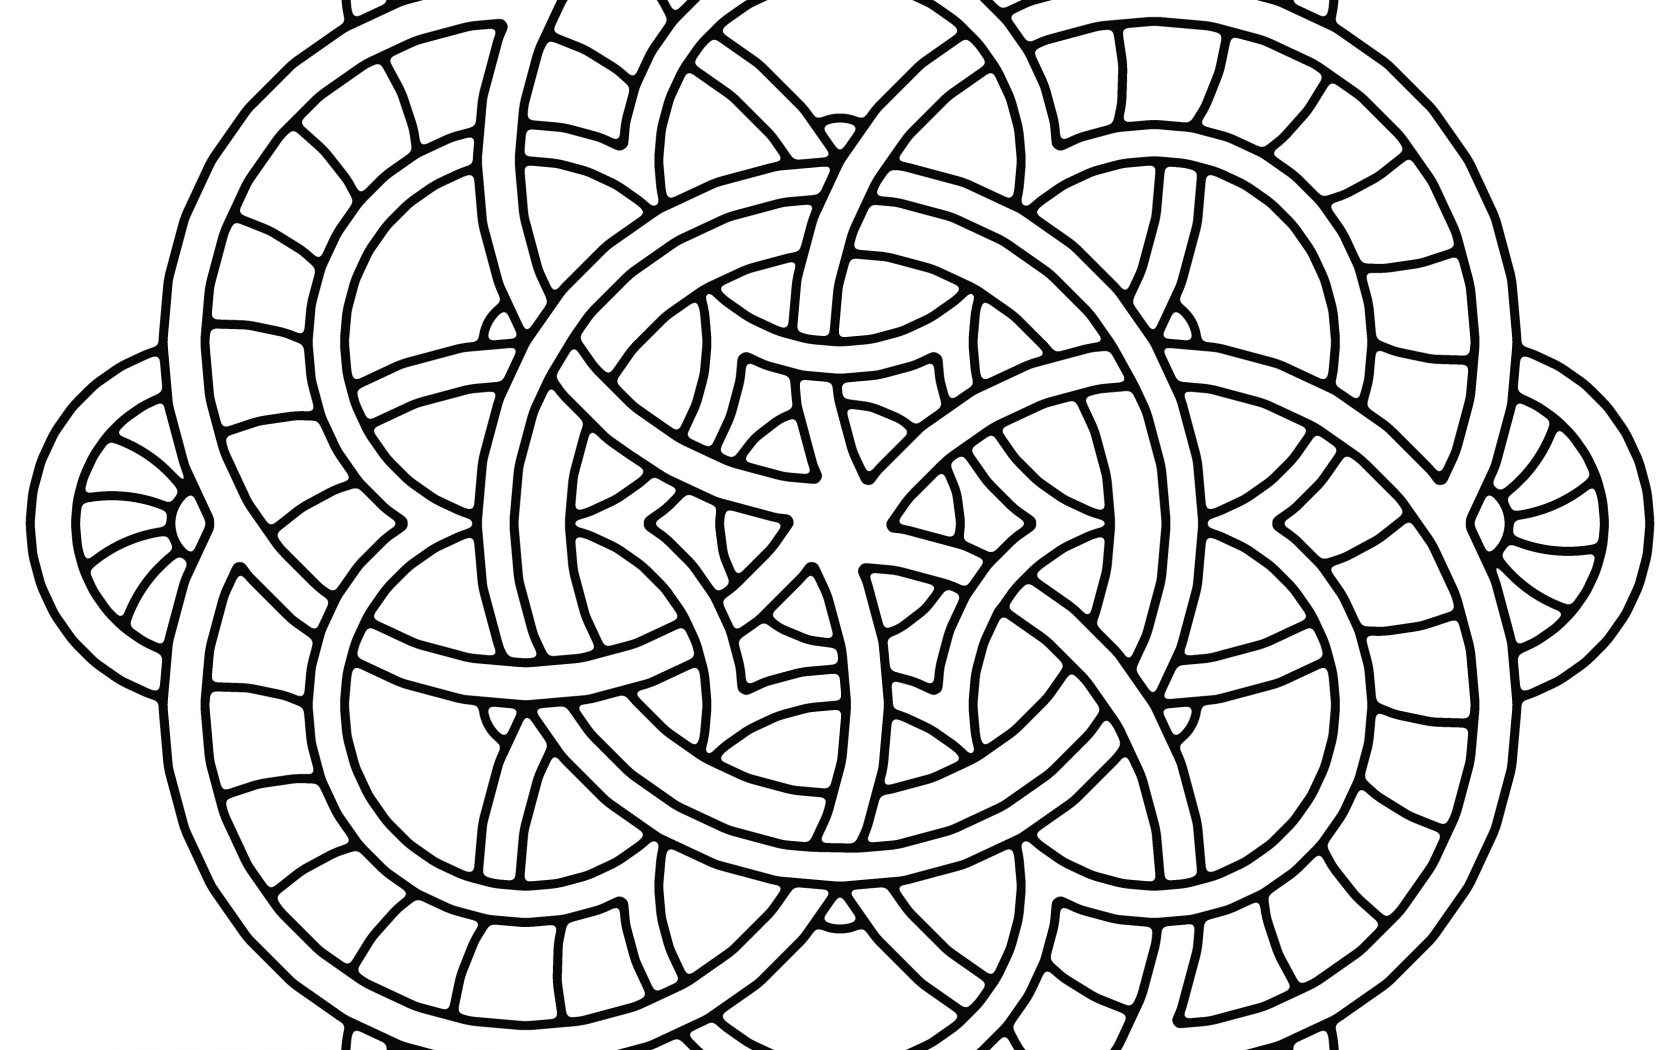 mandala meditation coloring pages yoga and meditation coloring book for adults with yoga meditation coloring pages mandala